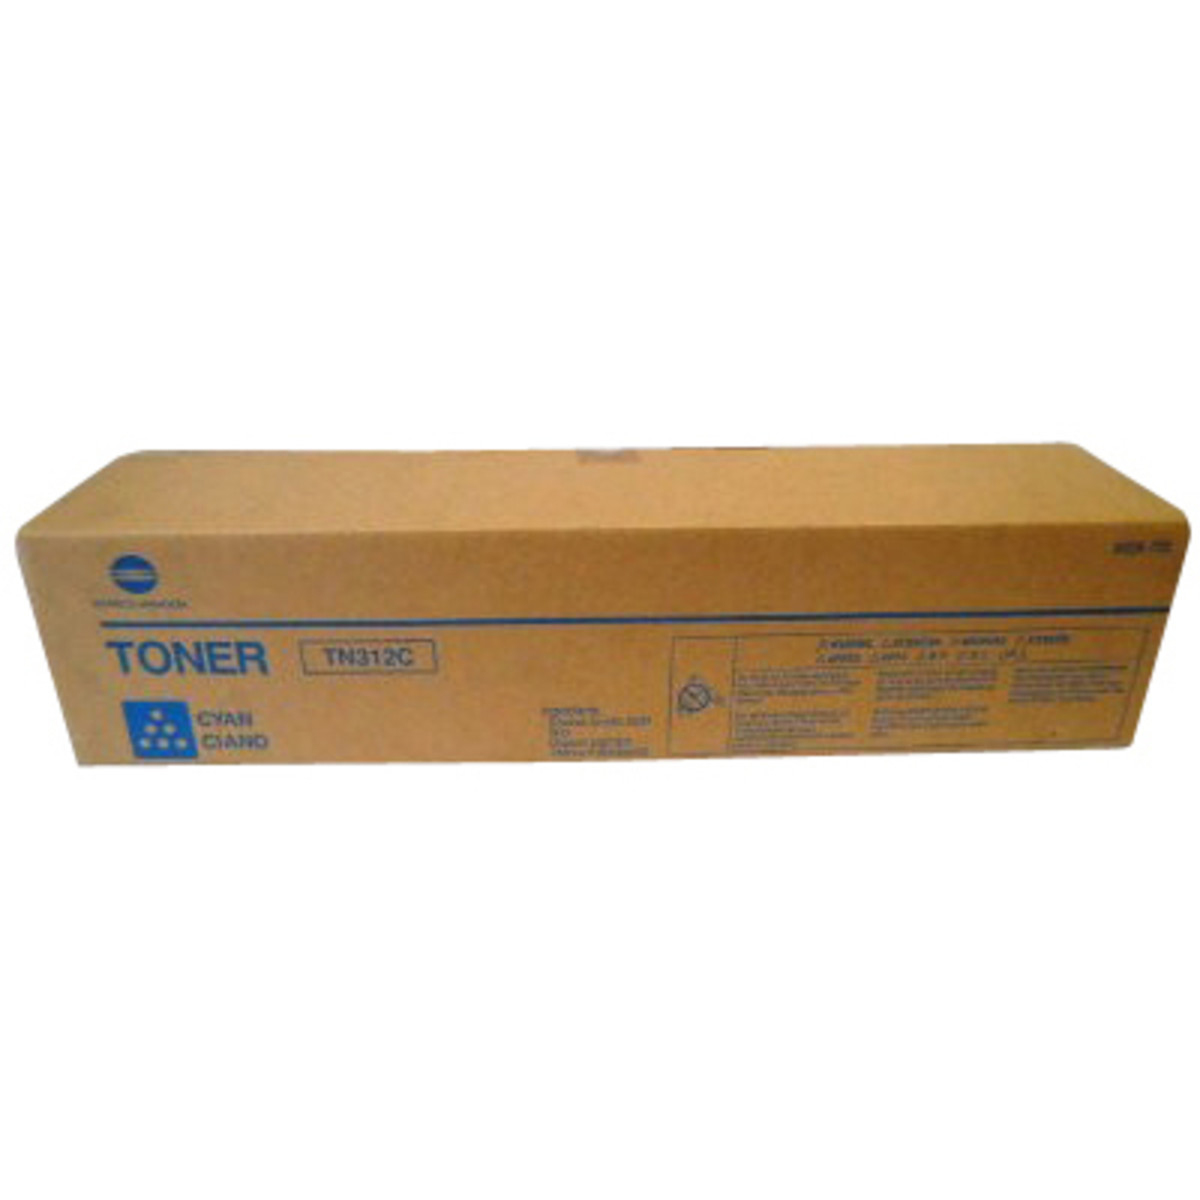 Konica Minolta 8938-708 Black Copier Cartridge